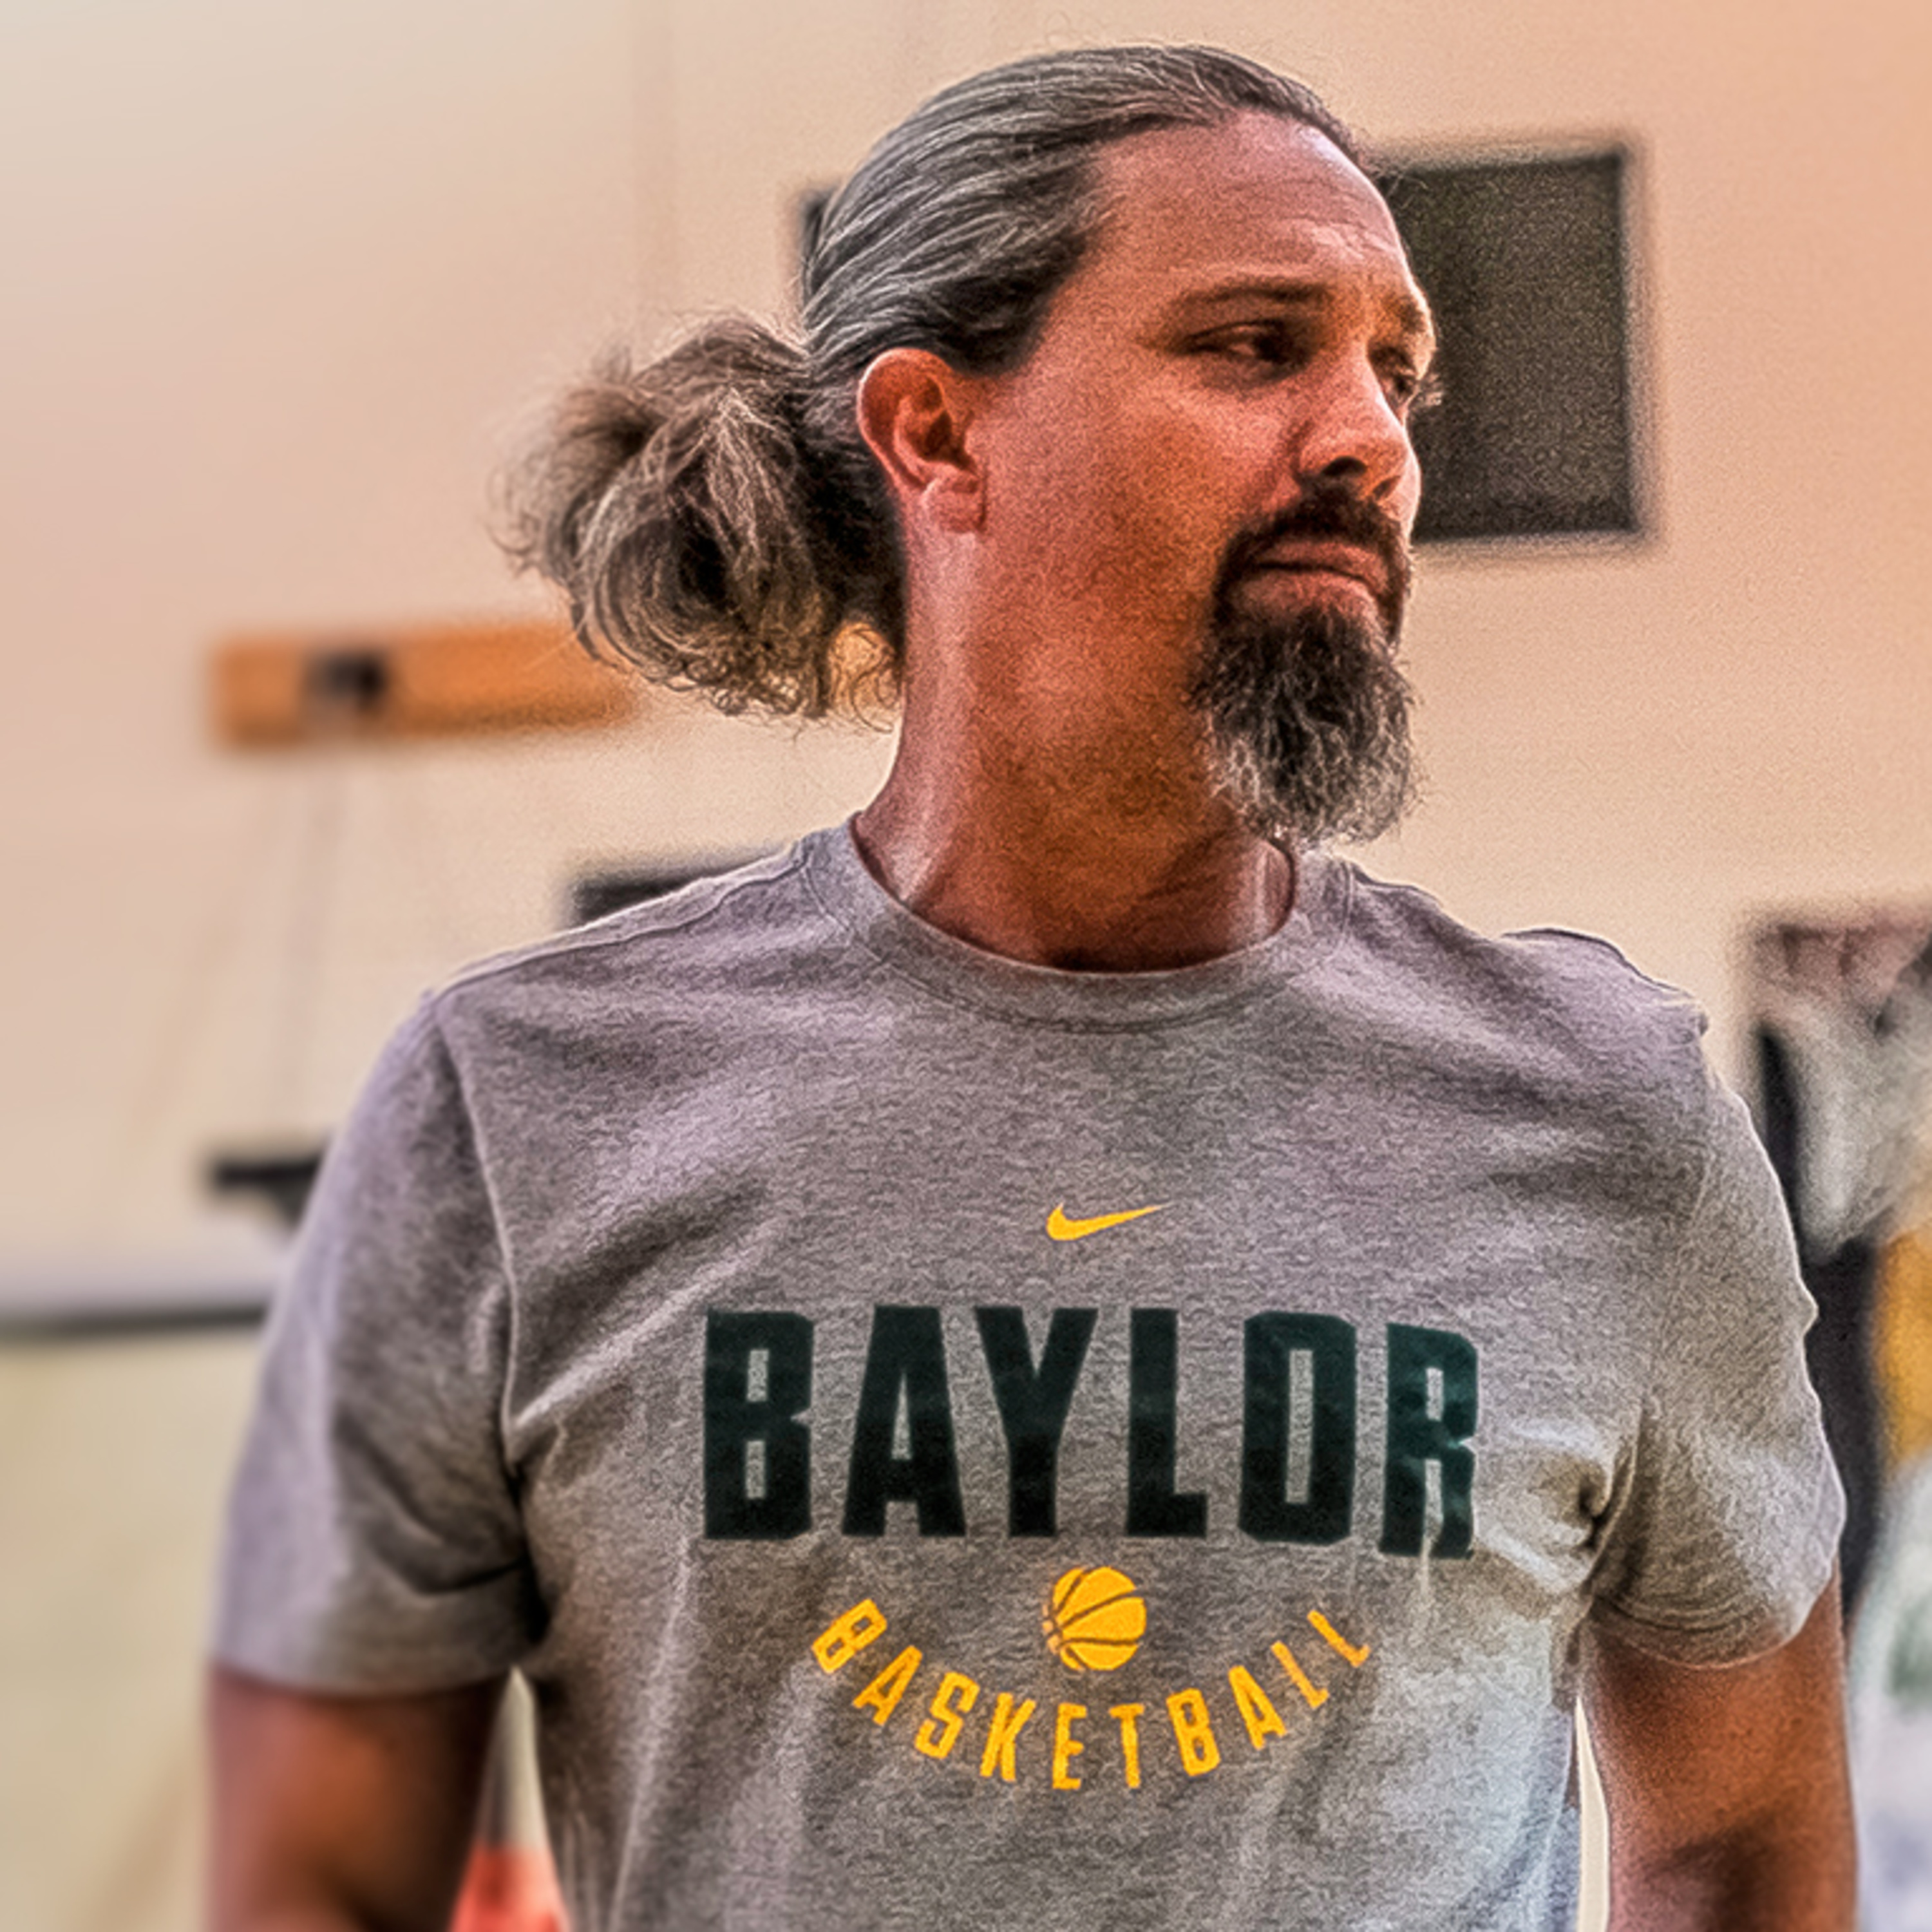 The Fundamentals of Building Strength with Baylor Coach Jeremy Heffner